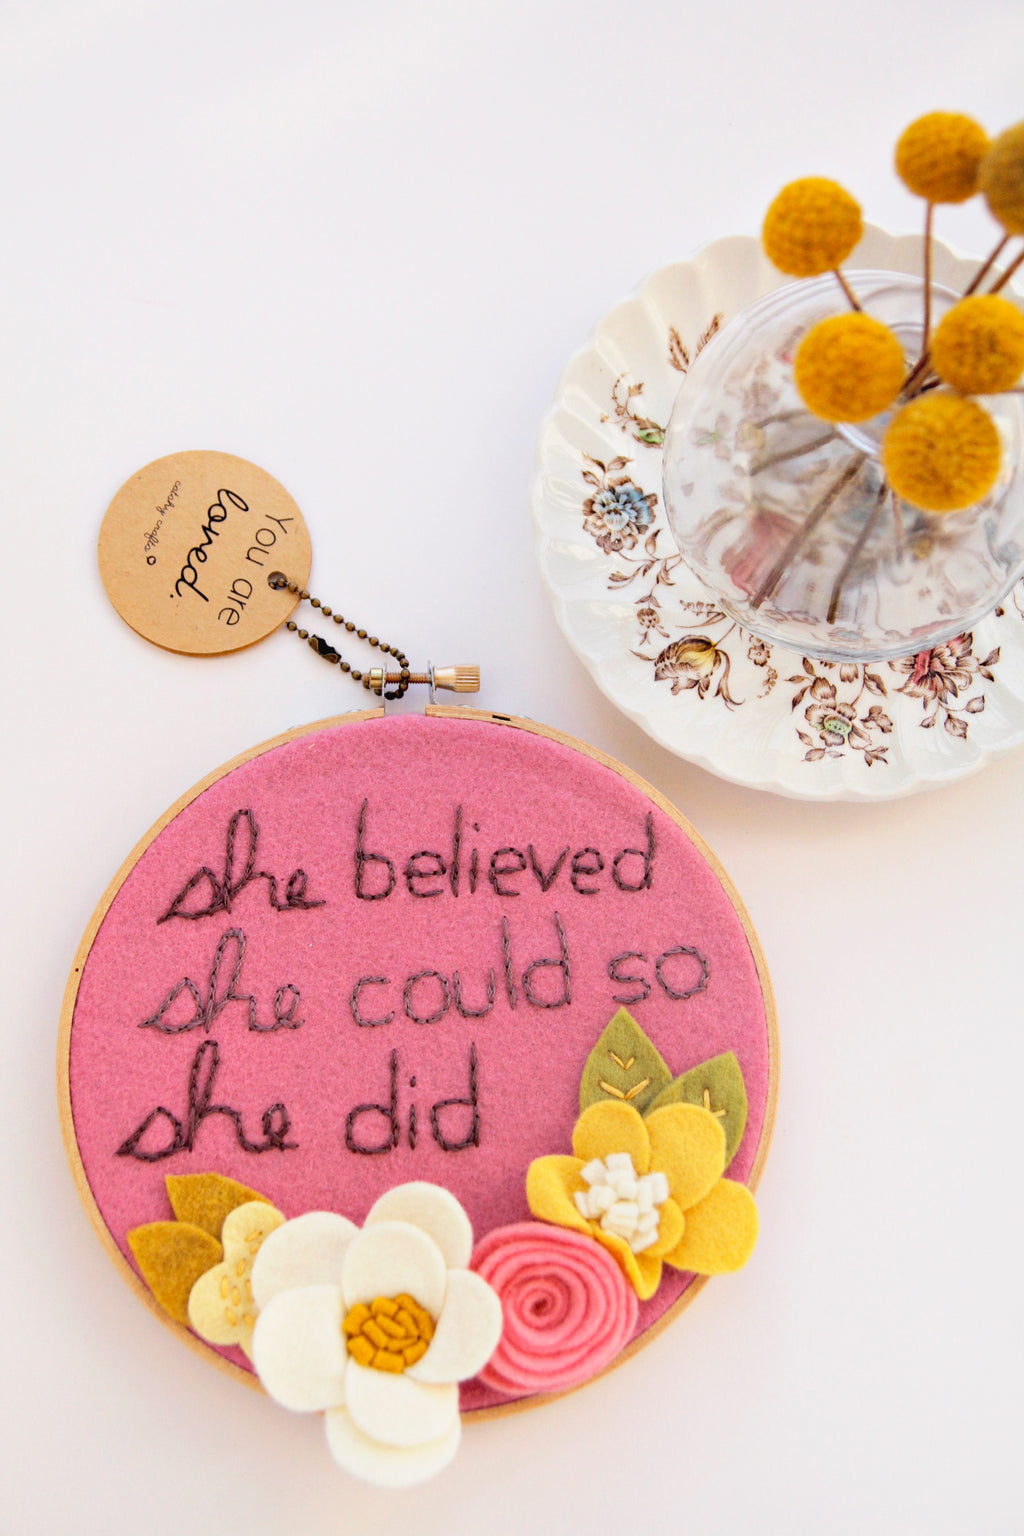 "She Believed She Could So She Did - 6"" Embroidery Hoop Art"